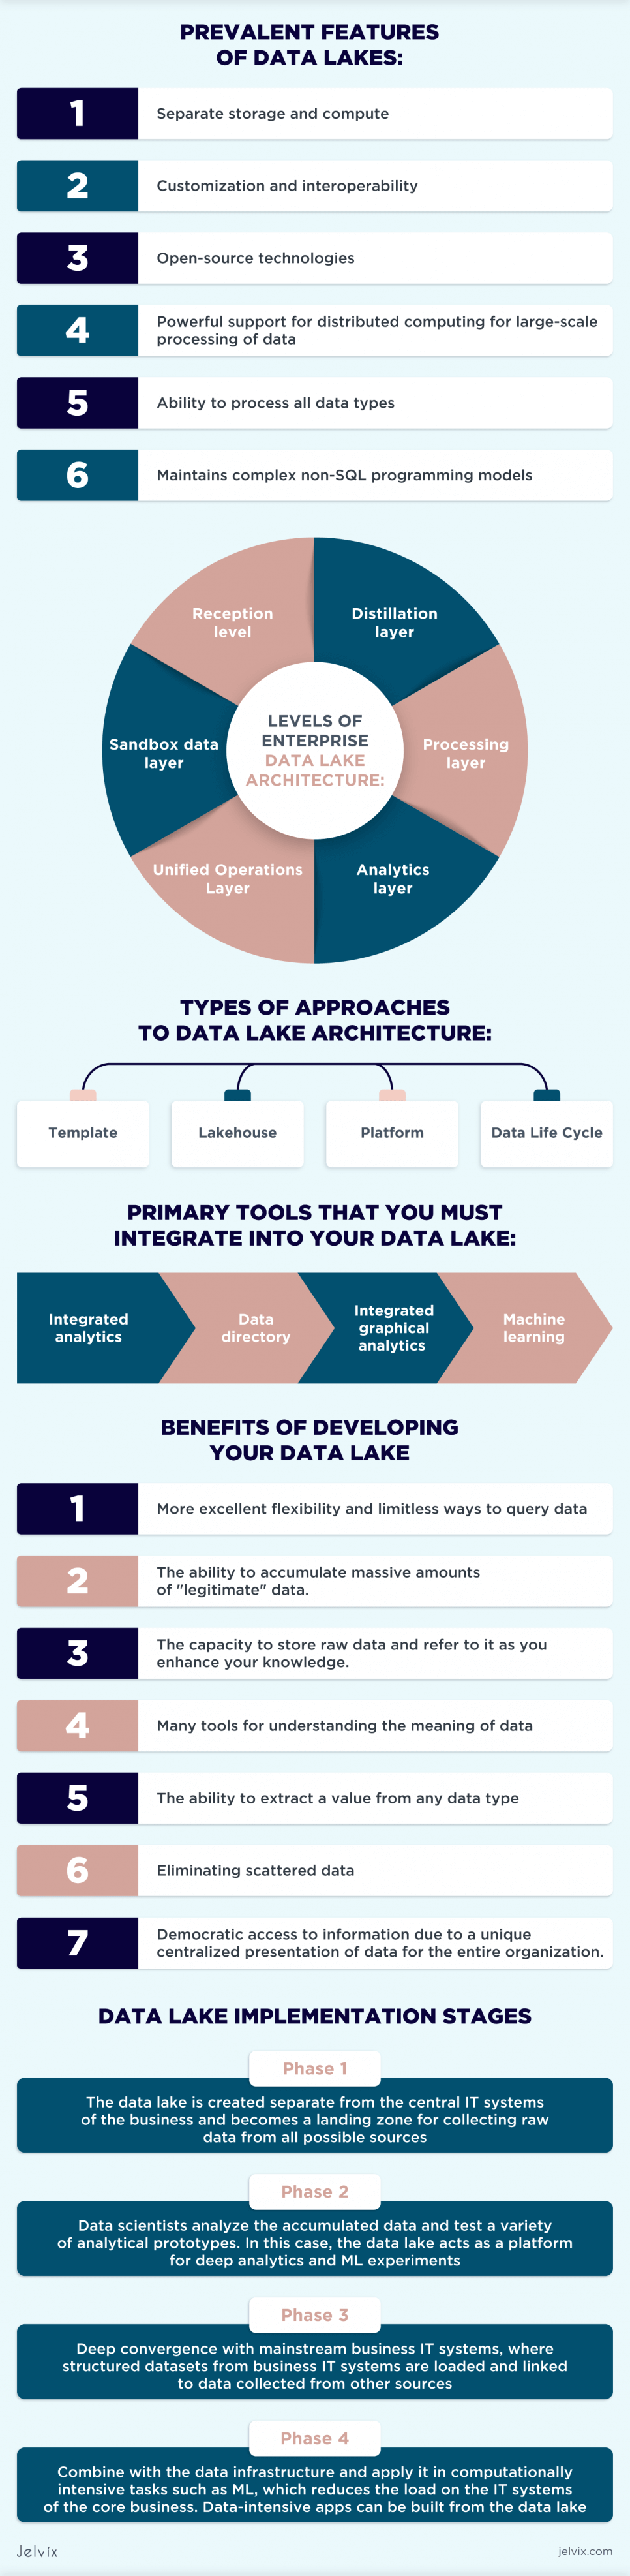 Data Lake Implementation Stages